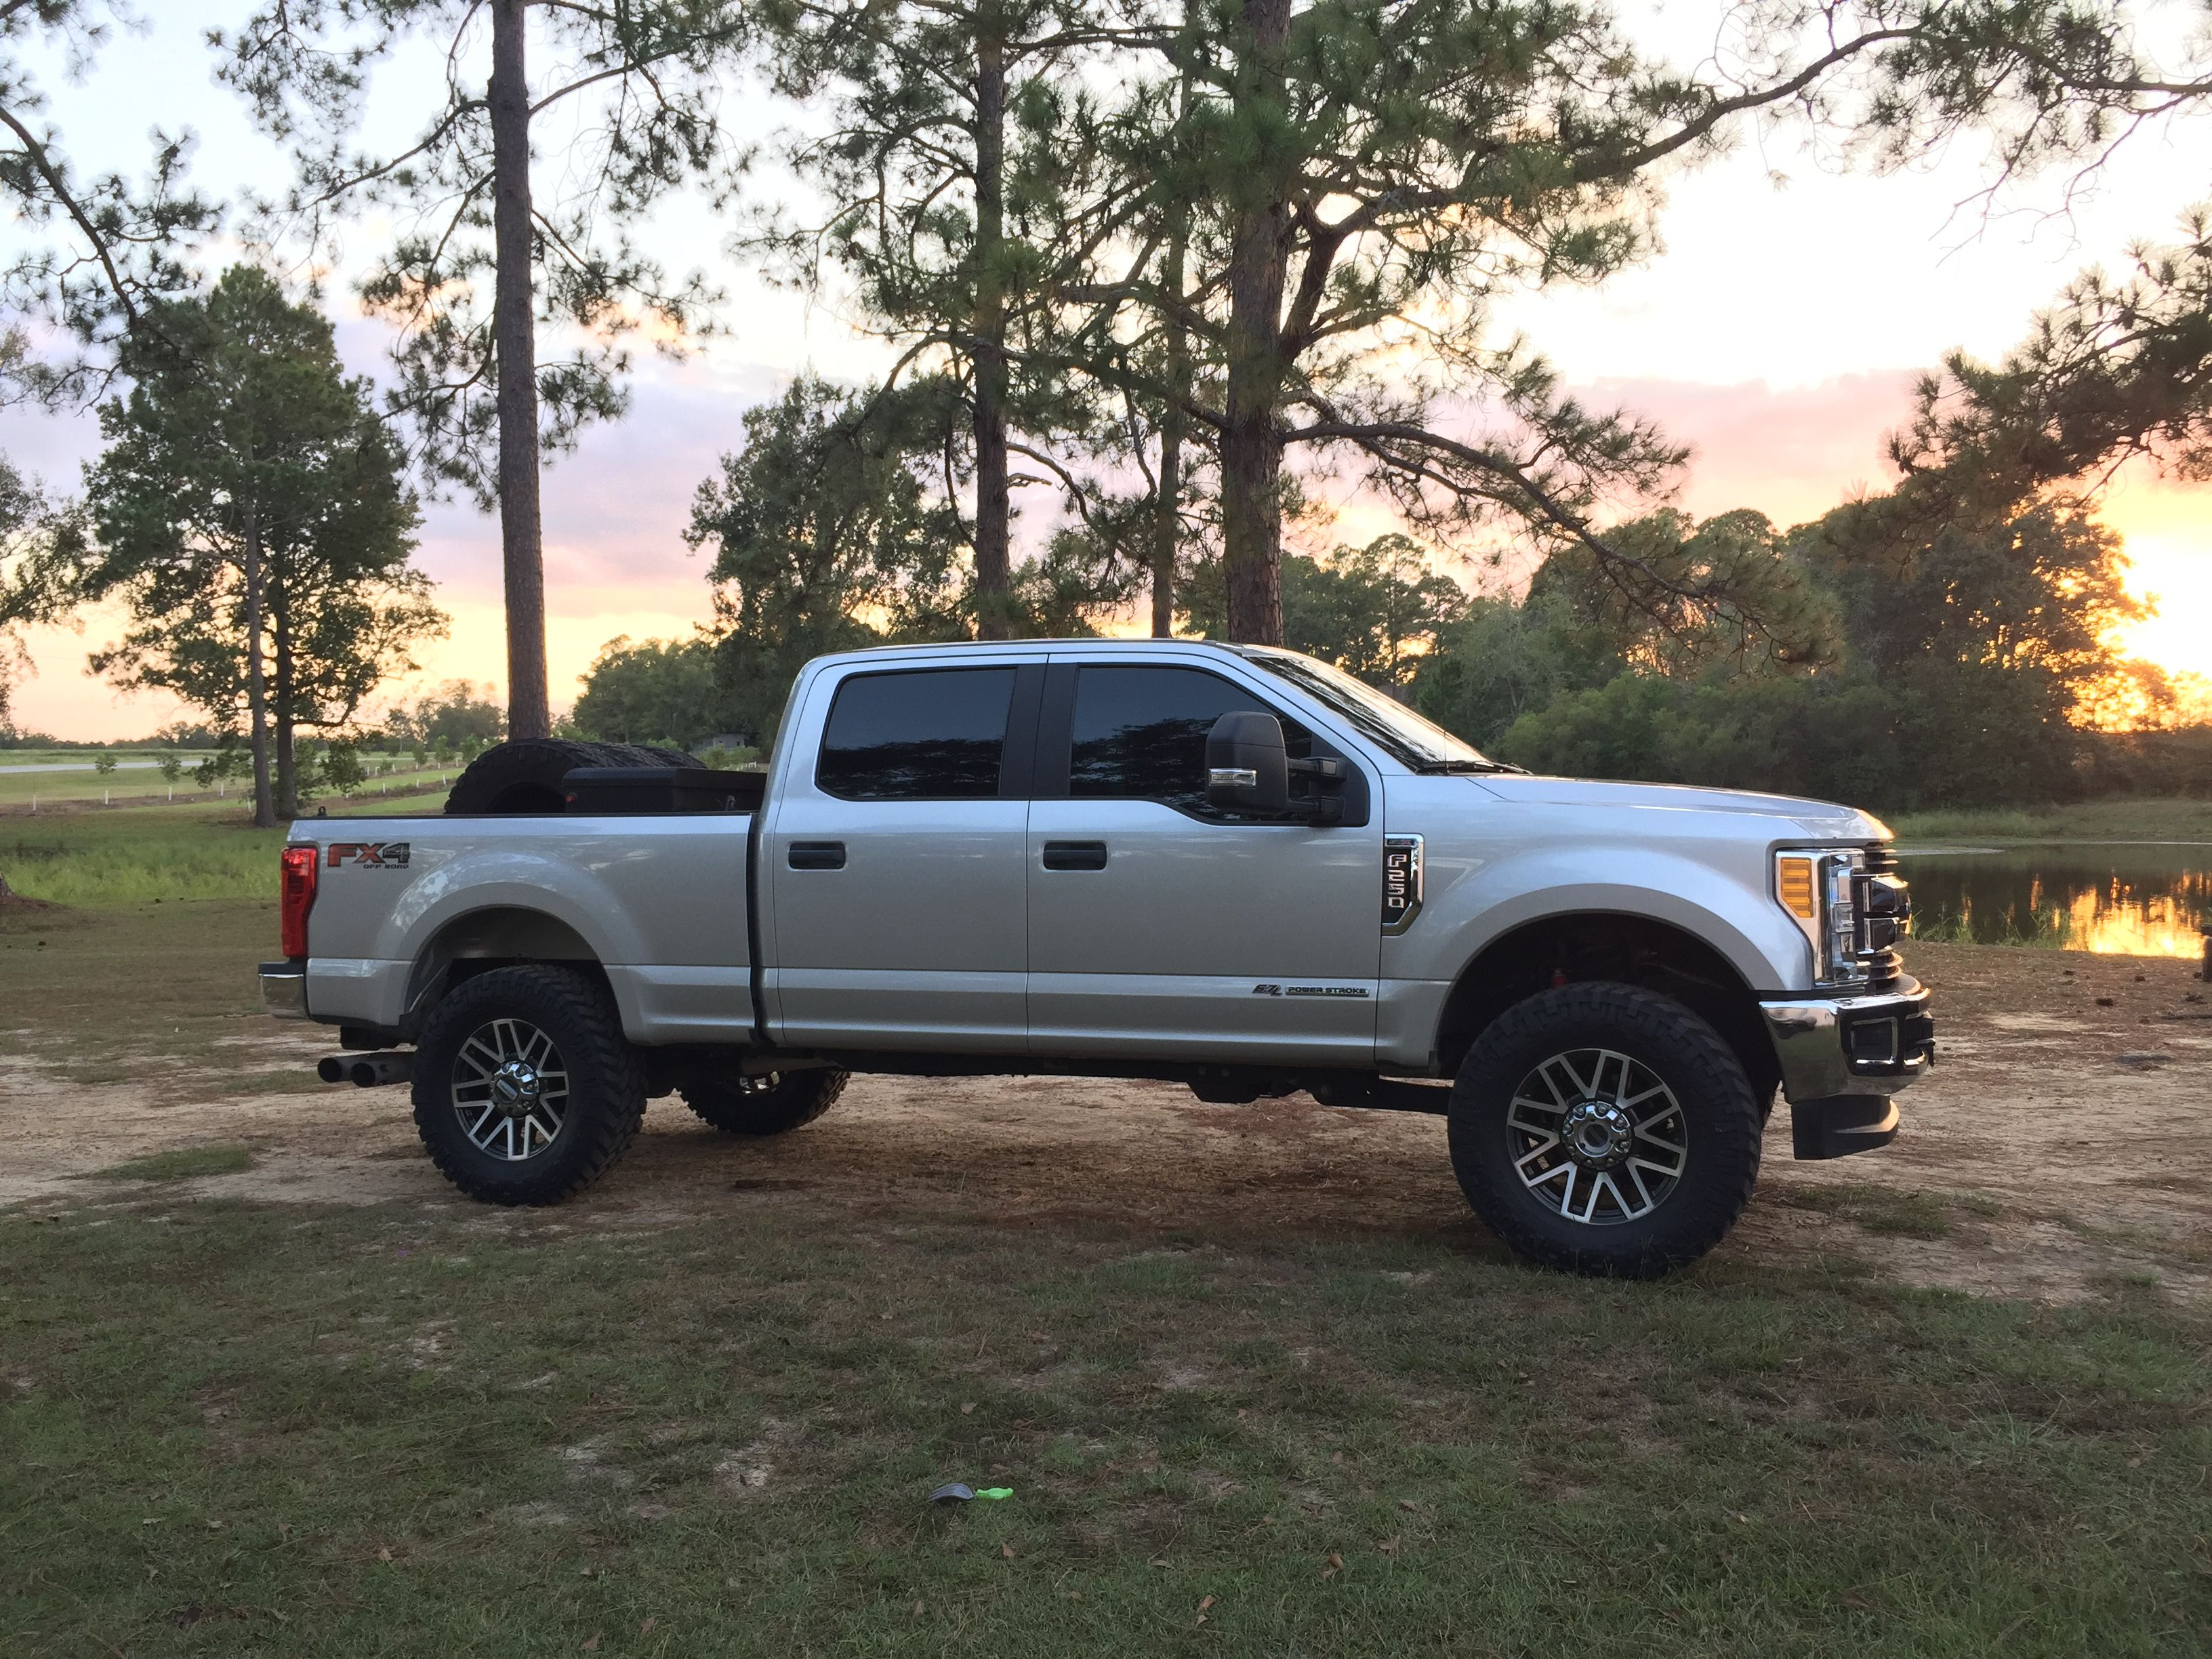 2017 F250 Leveling Kit >> F250 2017 With Leveling Kit And 37 Tires Pickup Trucks